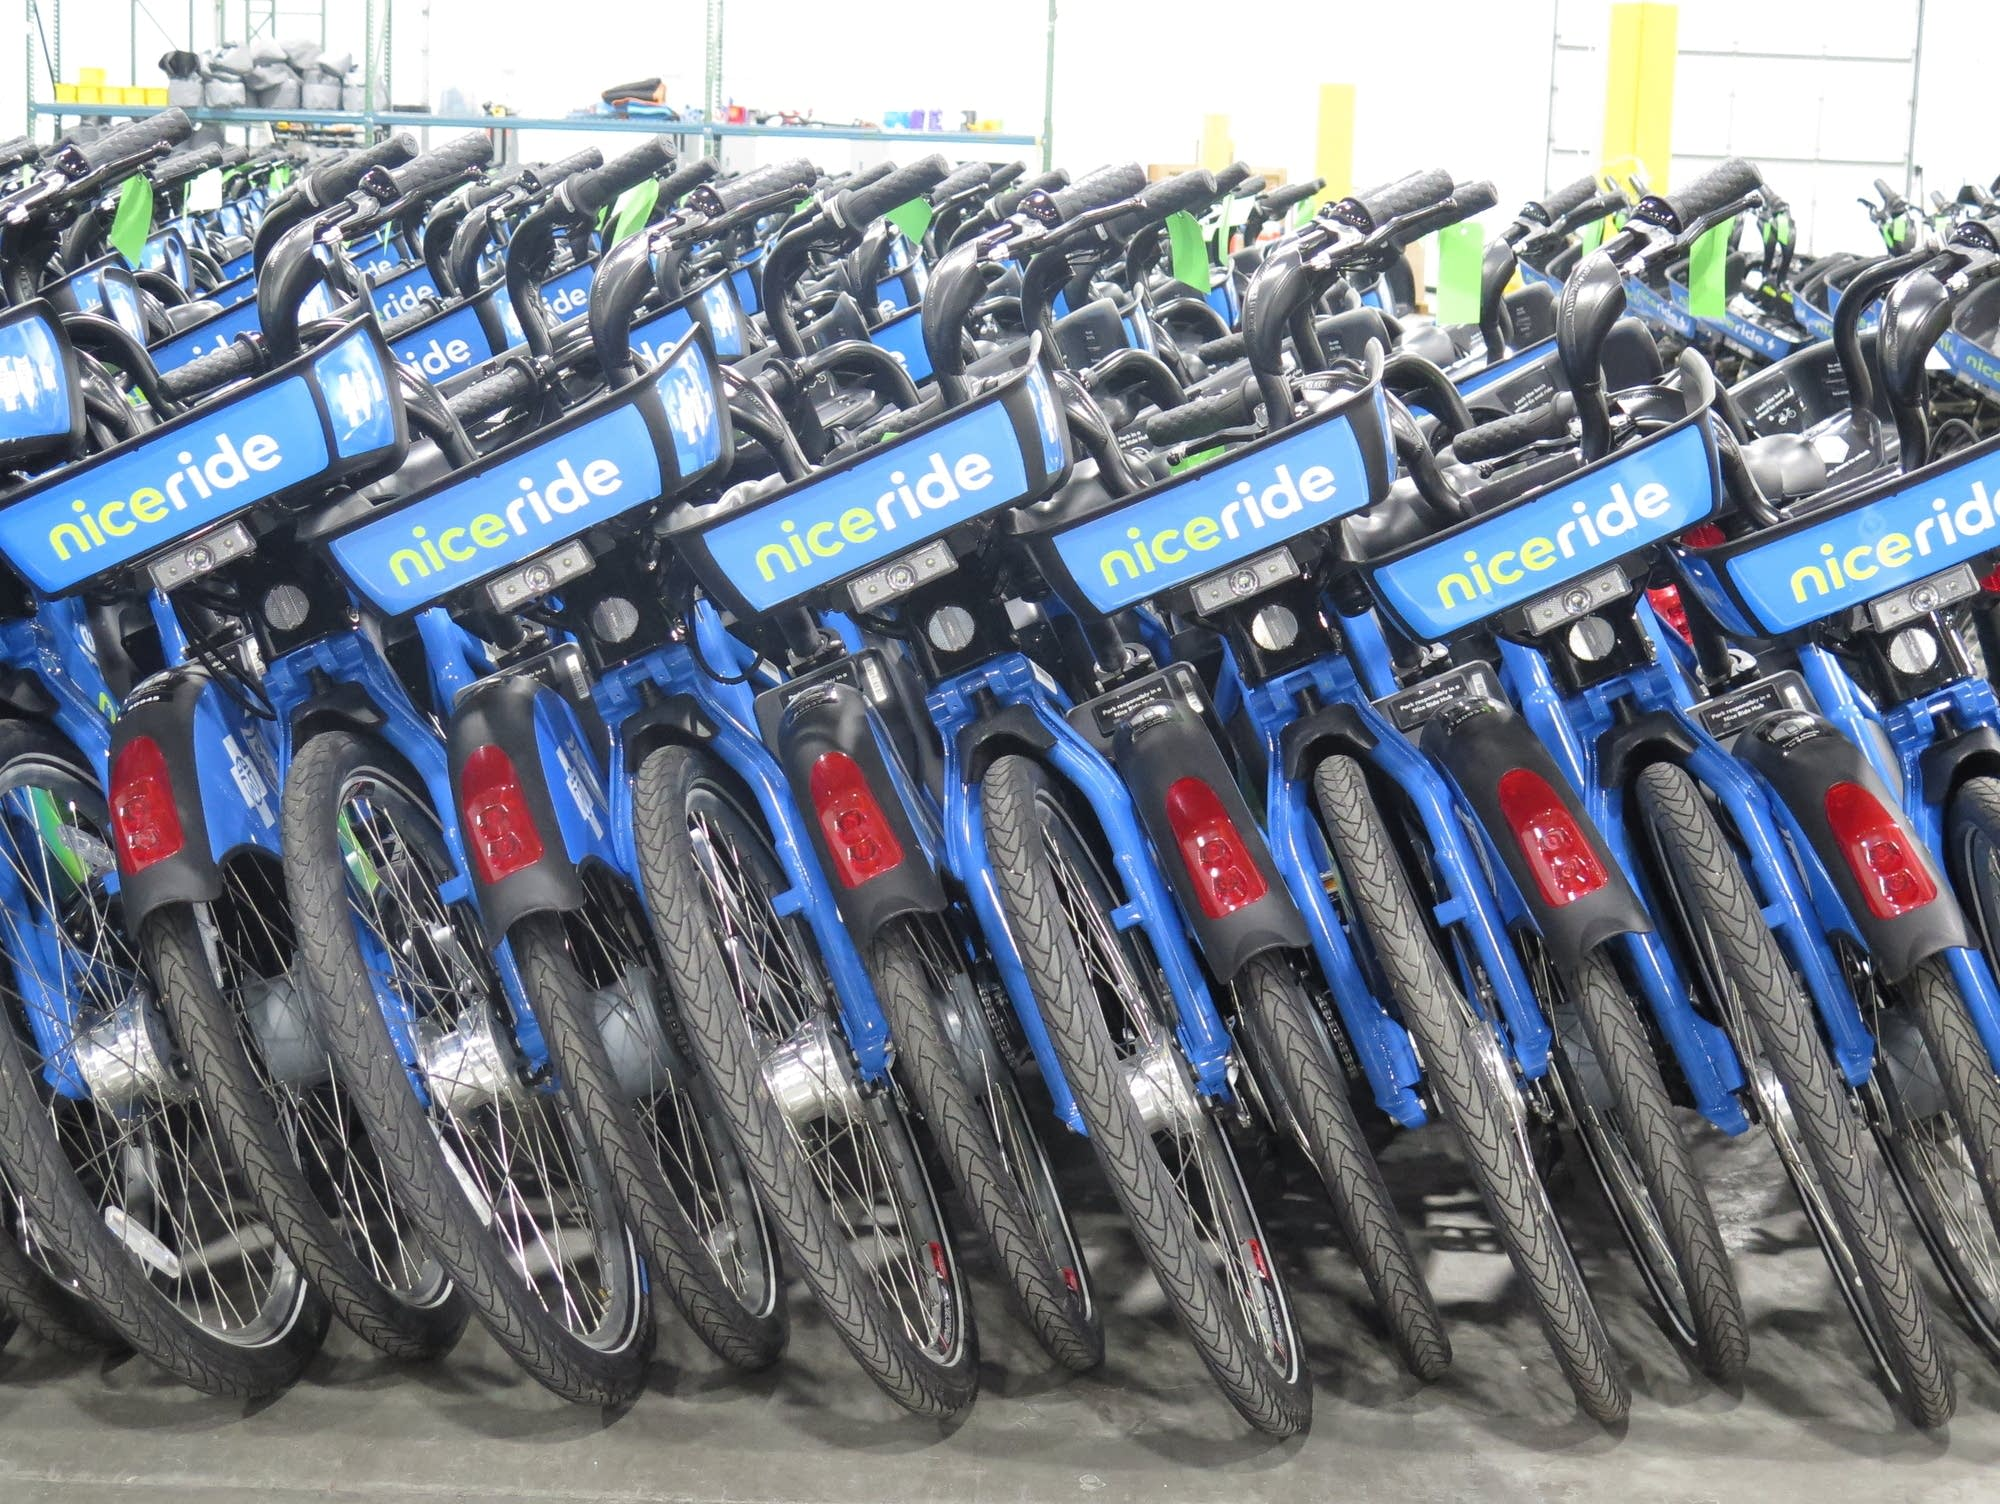 A fleet of 1,500 dockless bicycles is part of Nice Ride's fleet for 2019.